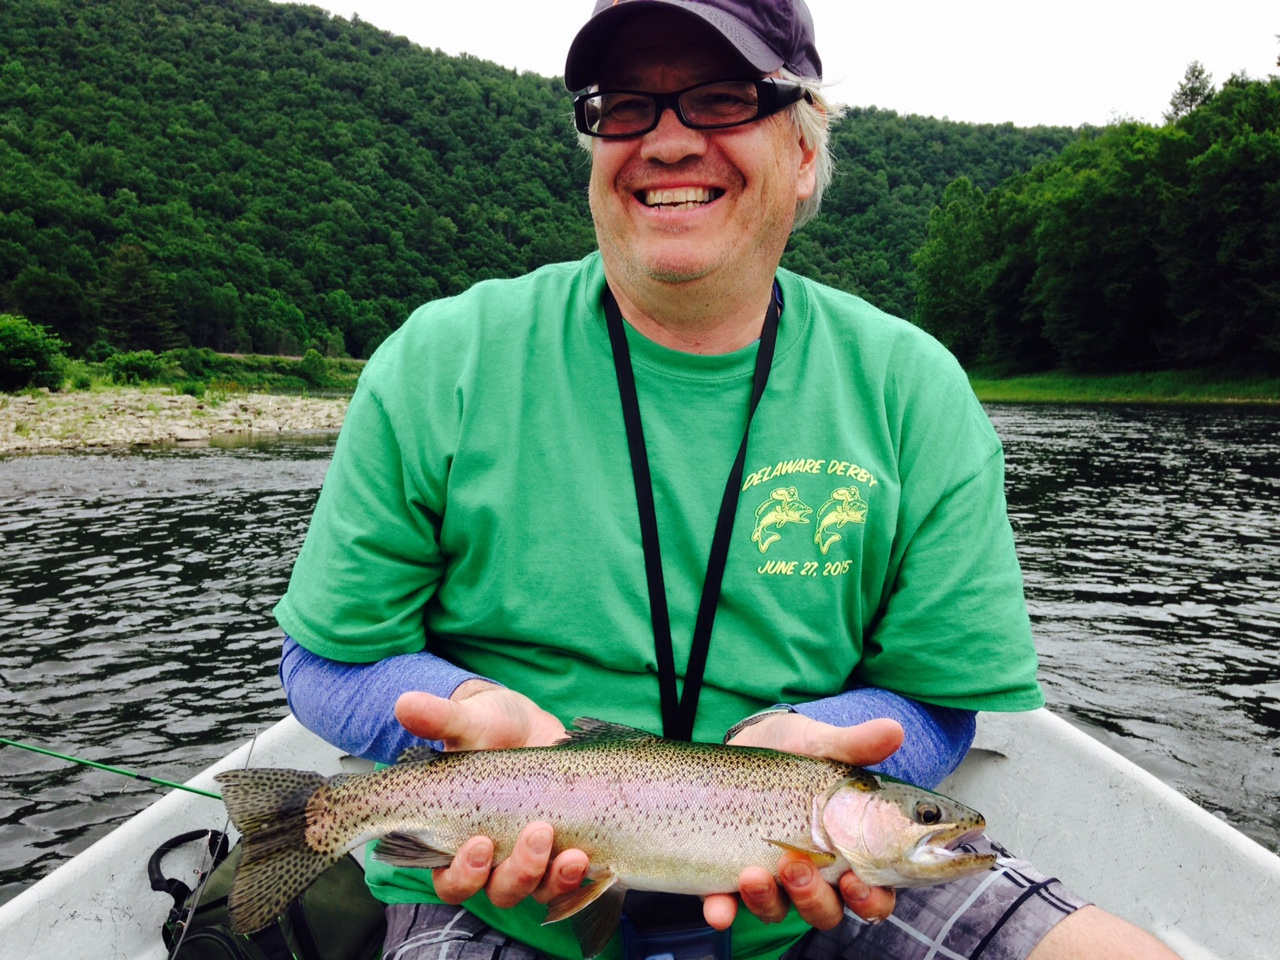 6/20/15 Frank with a beautiful Wild Rainbow trout!